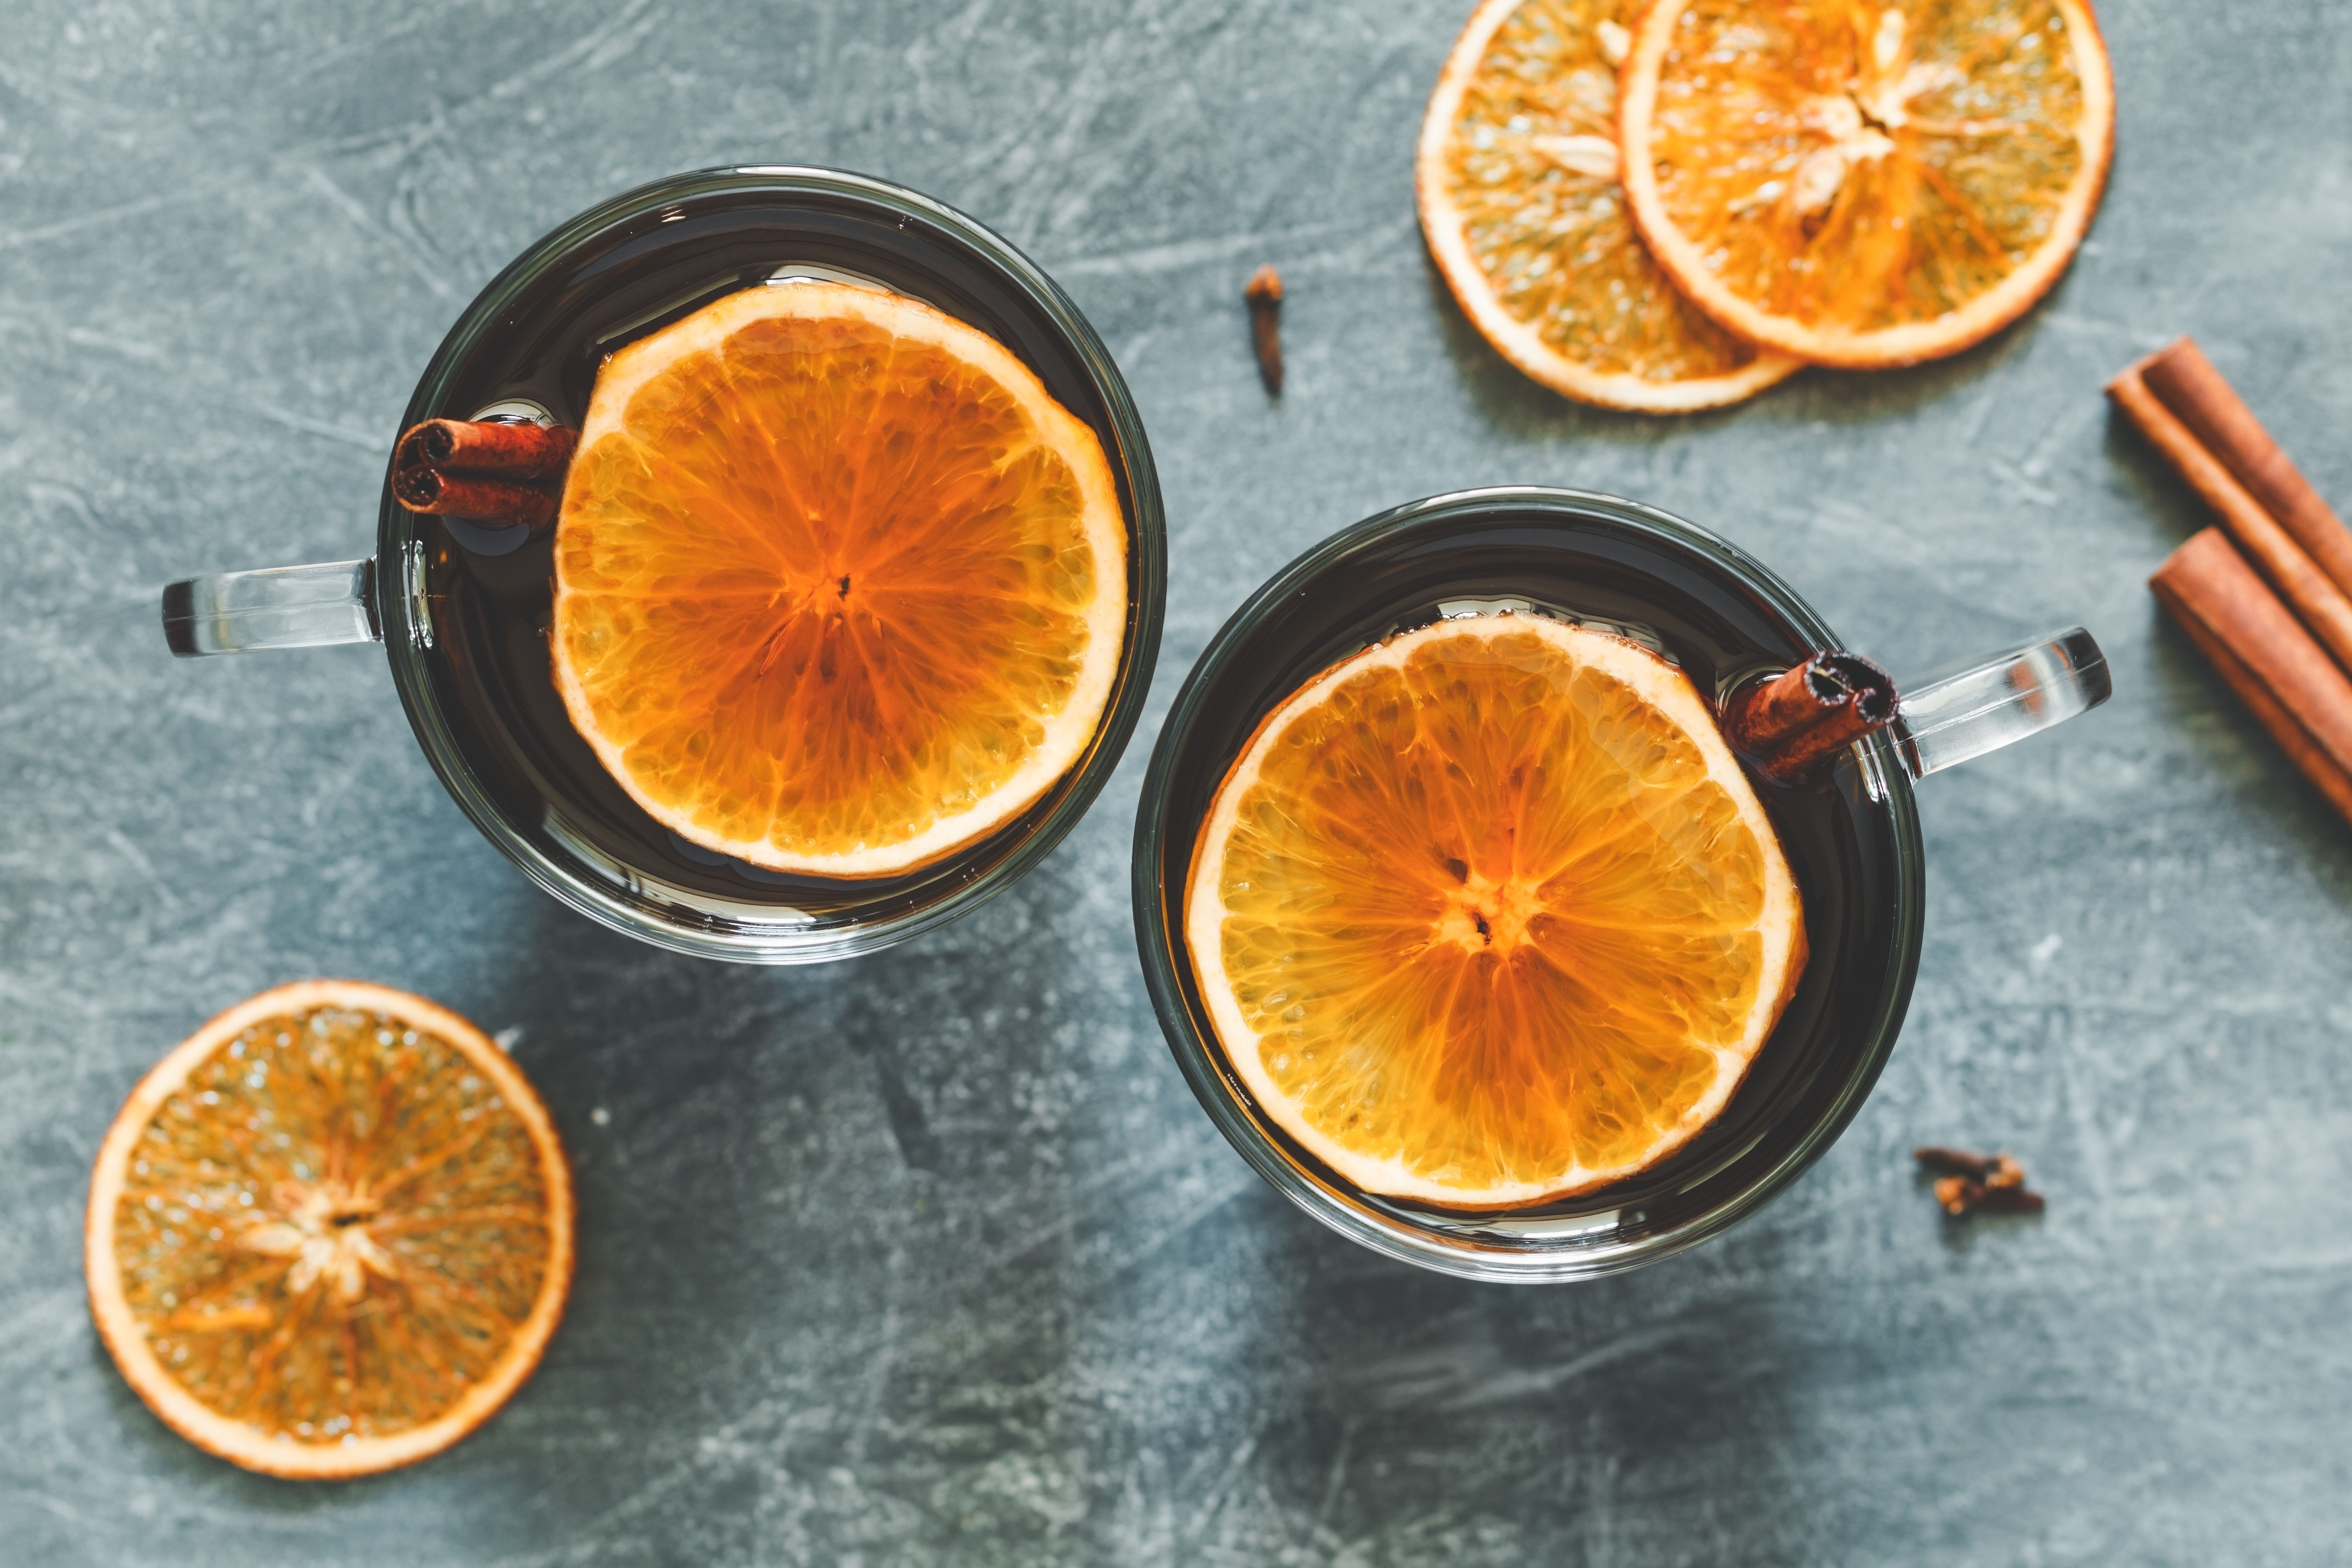 Mugs of homemade mulled wine with orange slices and cinnamon sticks